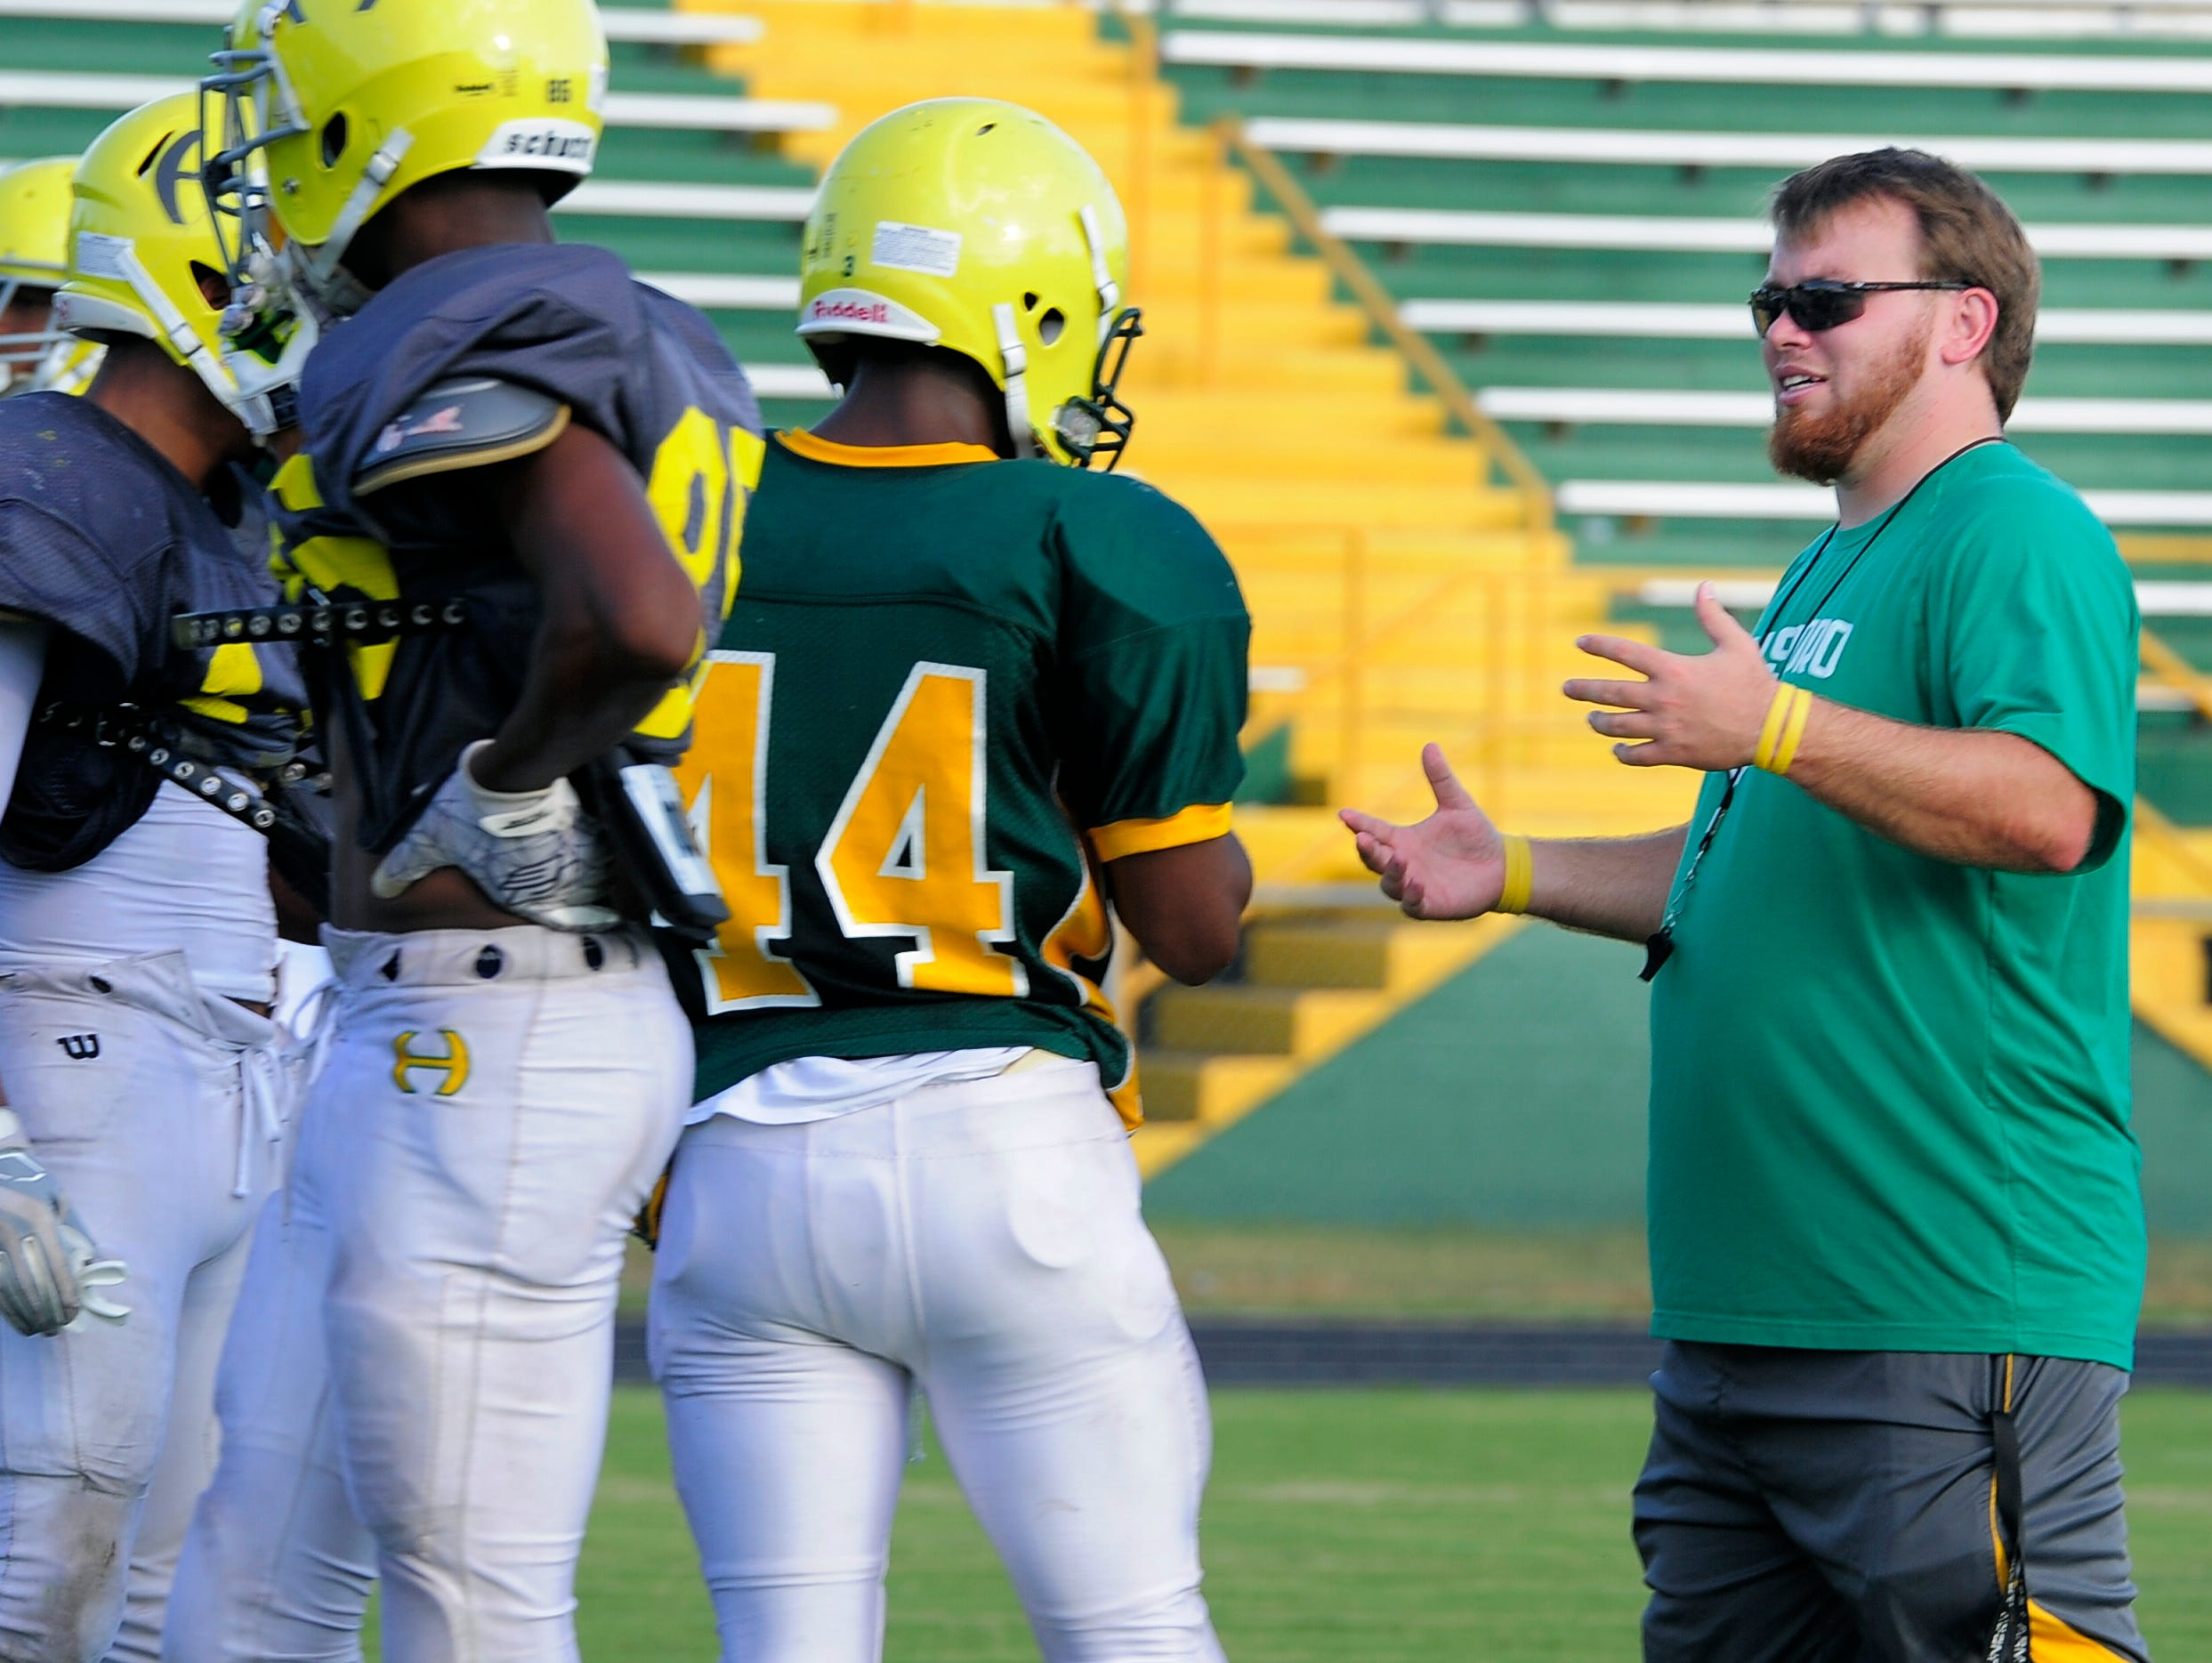 Hillsboro assistant football coach Dustin Lopez talks with his players during a practice Tuesday in Nashville. The school's statisticians are using an app called iscore to compile live stats during a game.